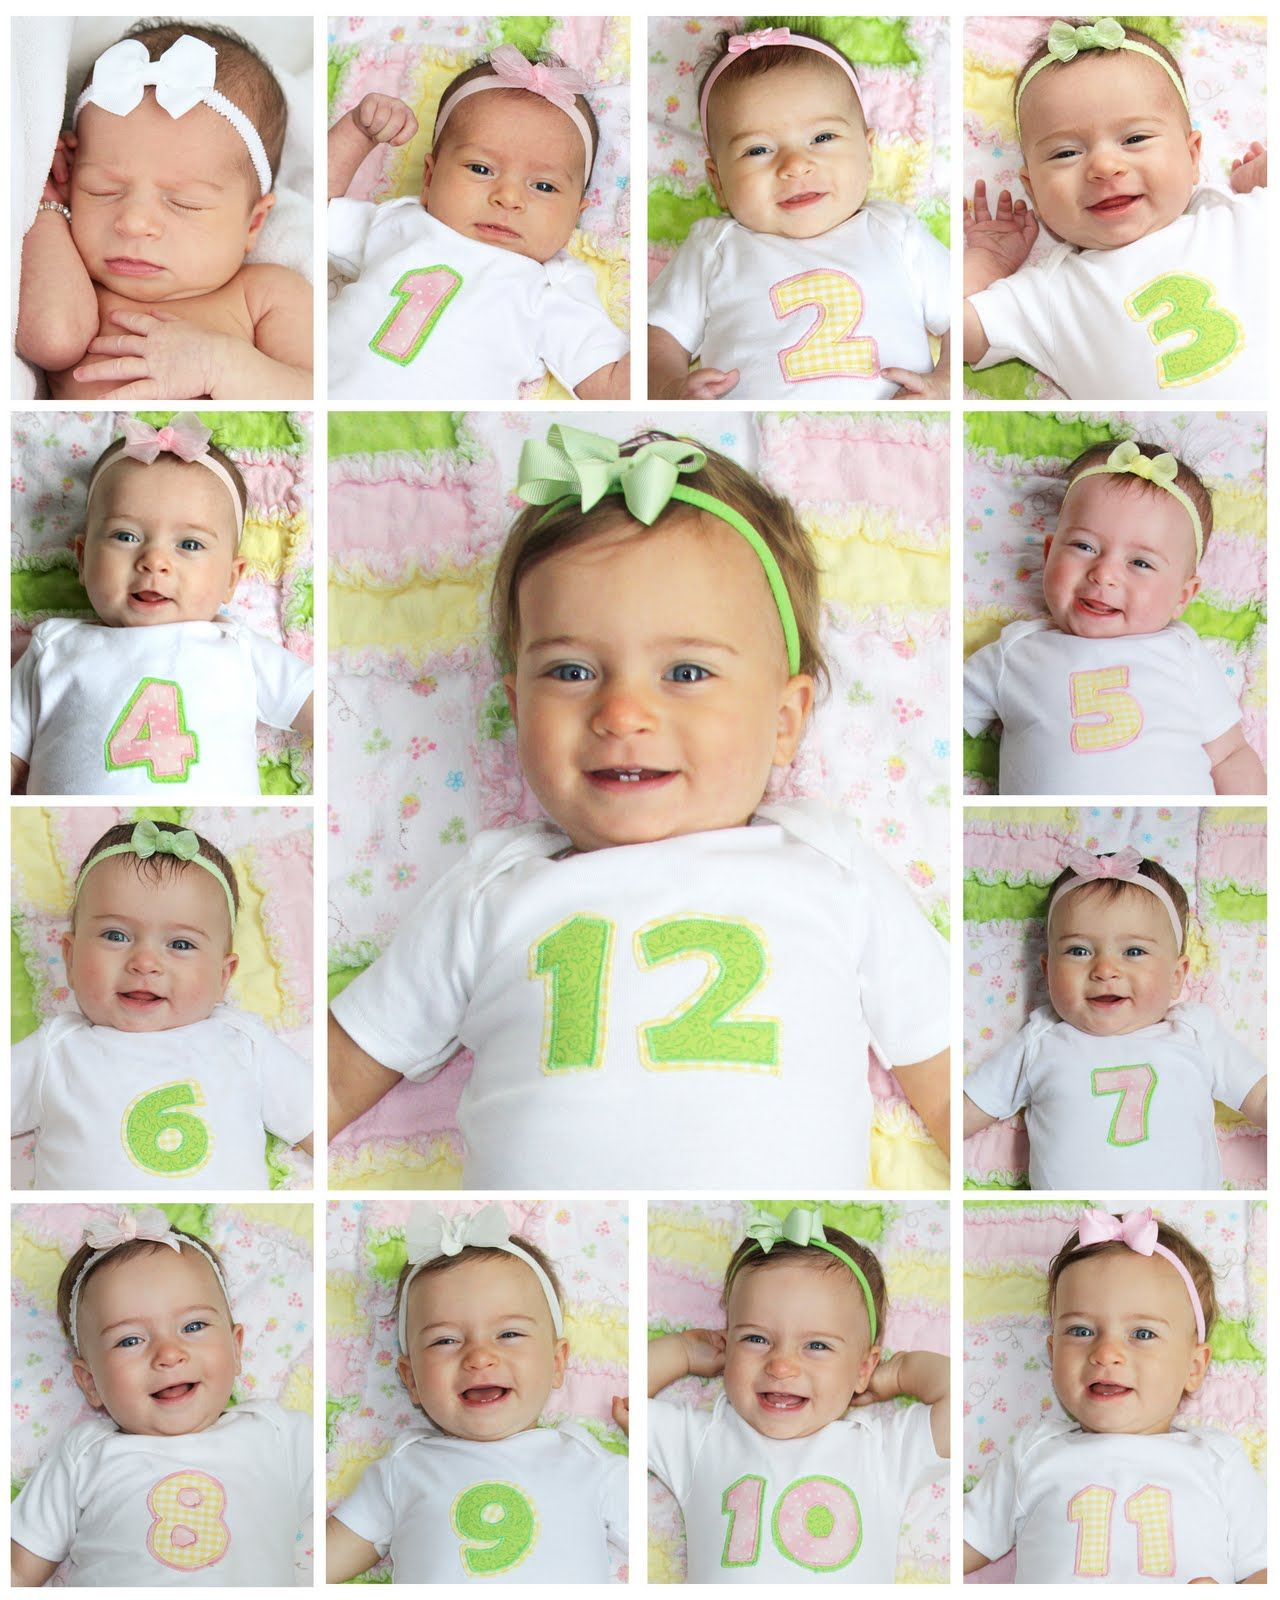 12 Month Photo Collage : month, photo, collage, Olivia, Matos, Photography, Photos,, Pictures,, Future